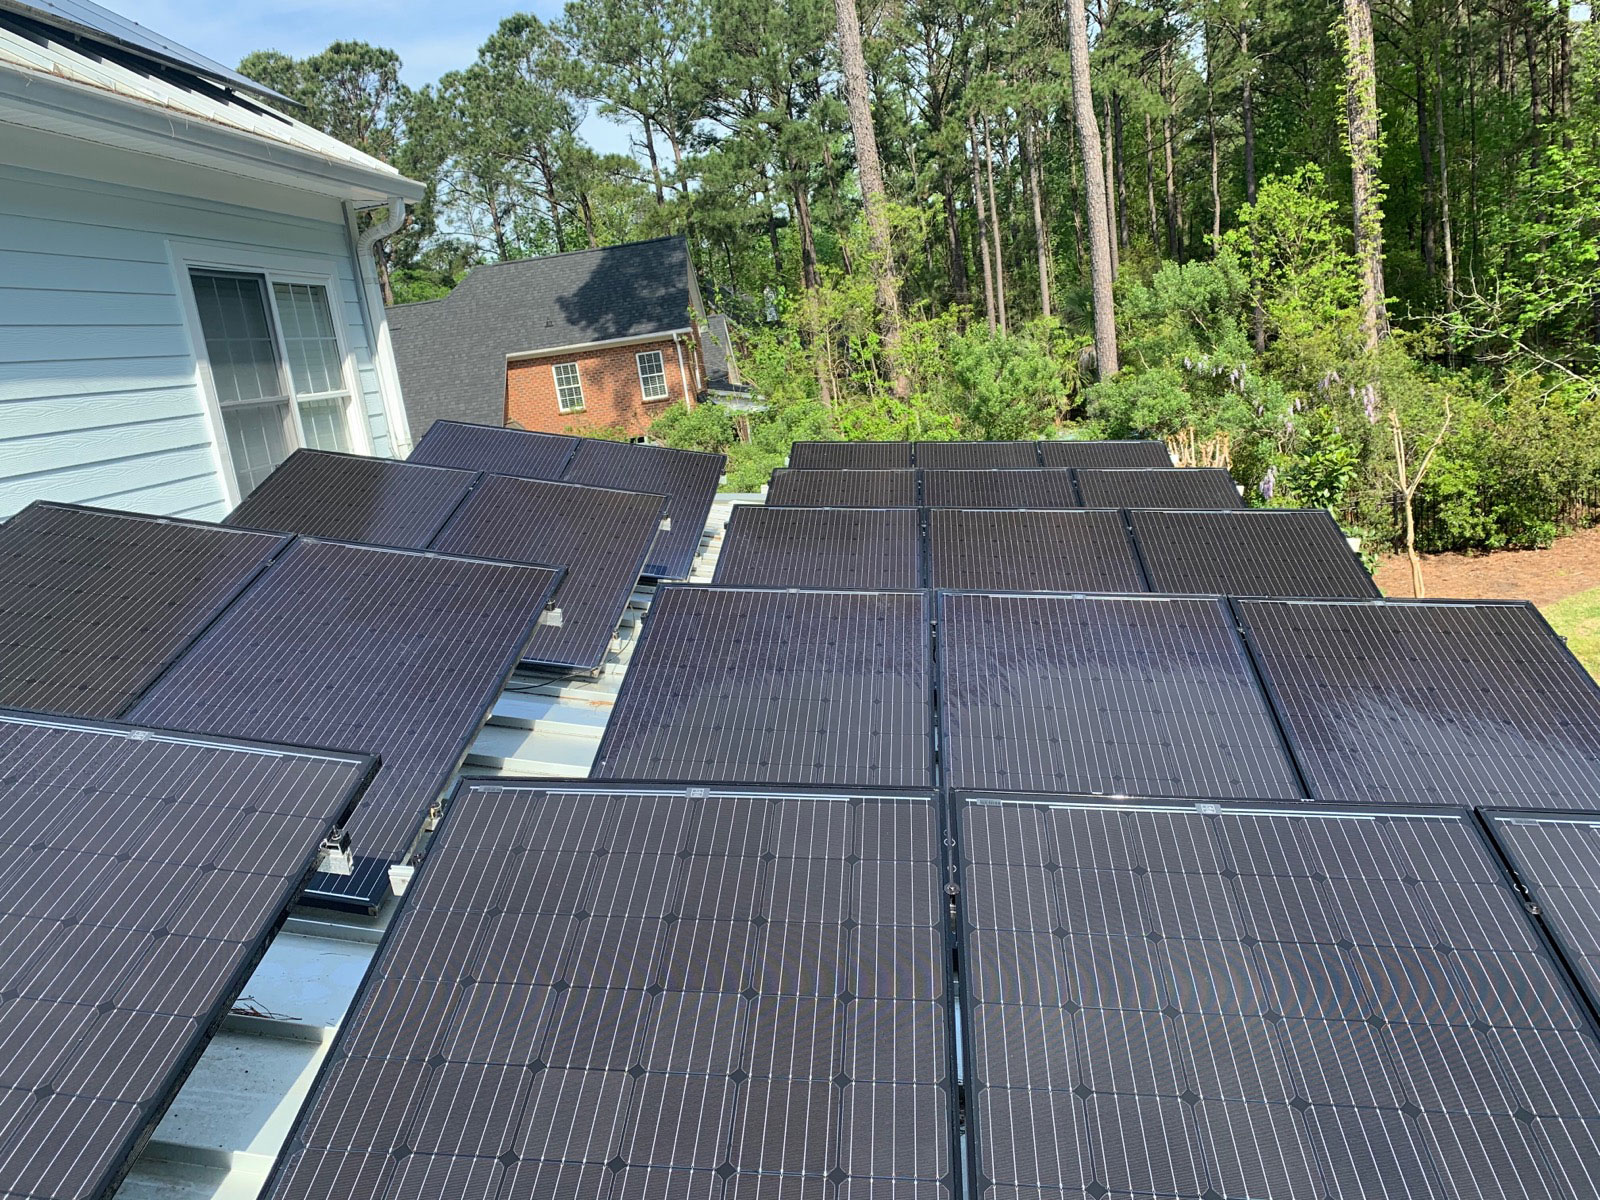 Solar-Panel-Cleaning-Company-Charleston-SC-Ambassador-Window-Cleaning6